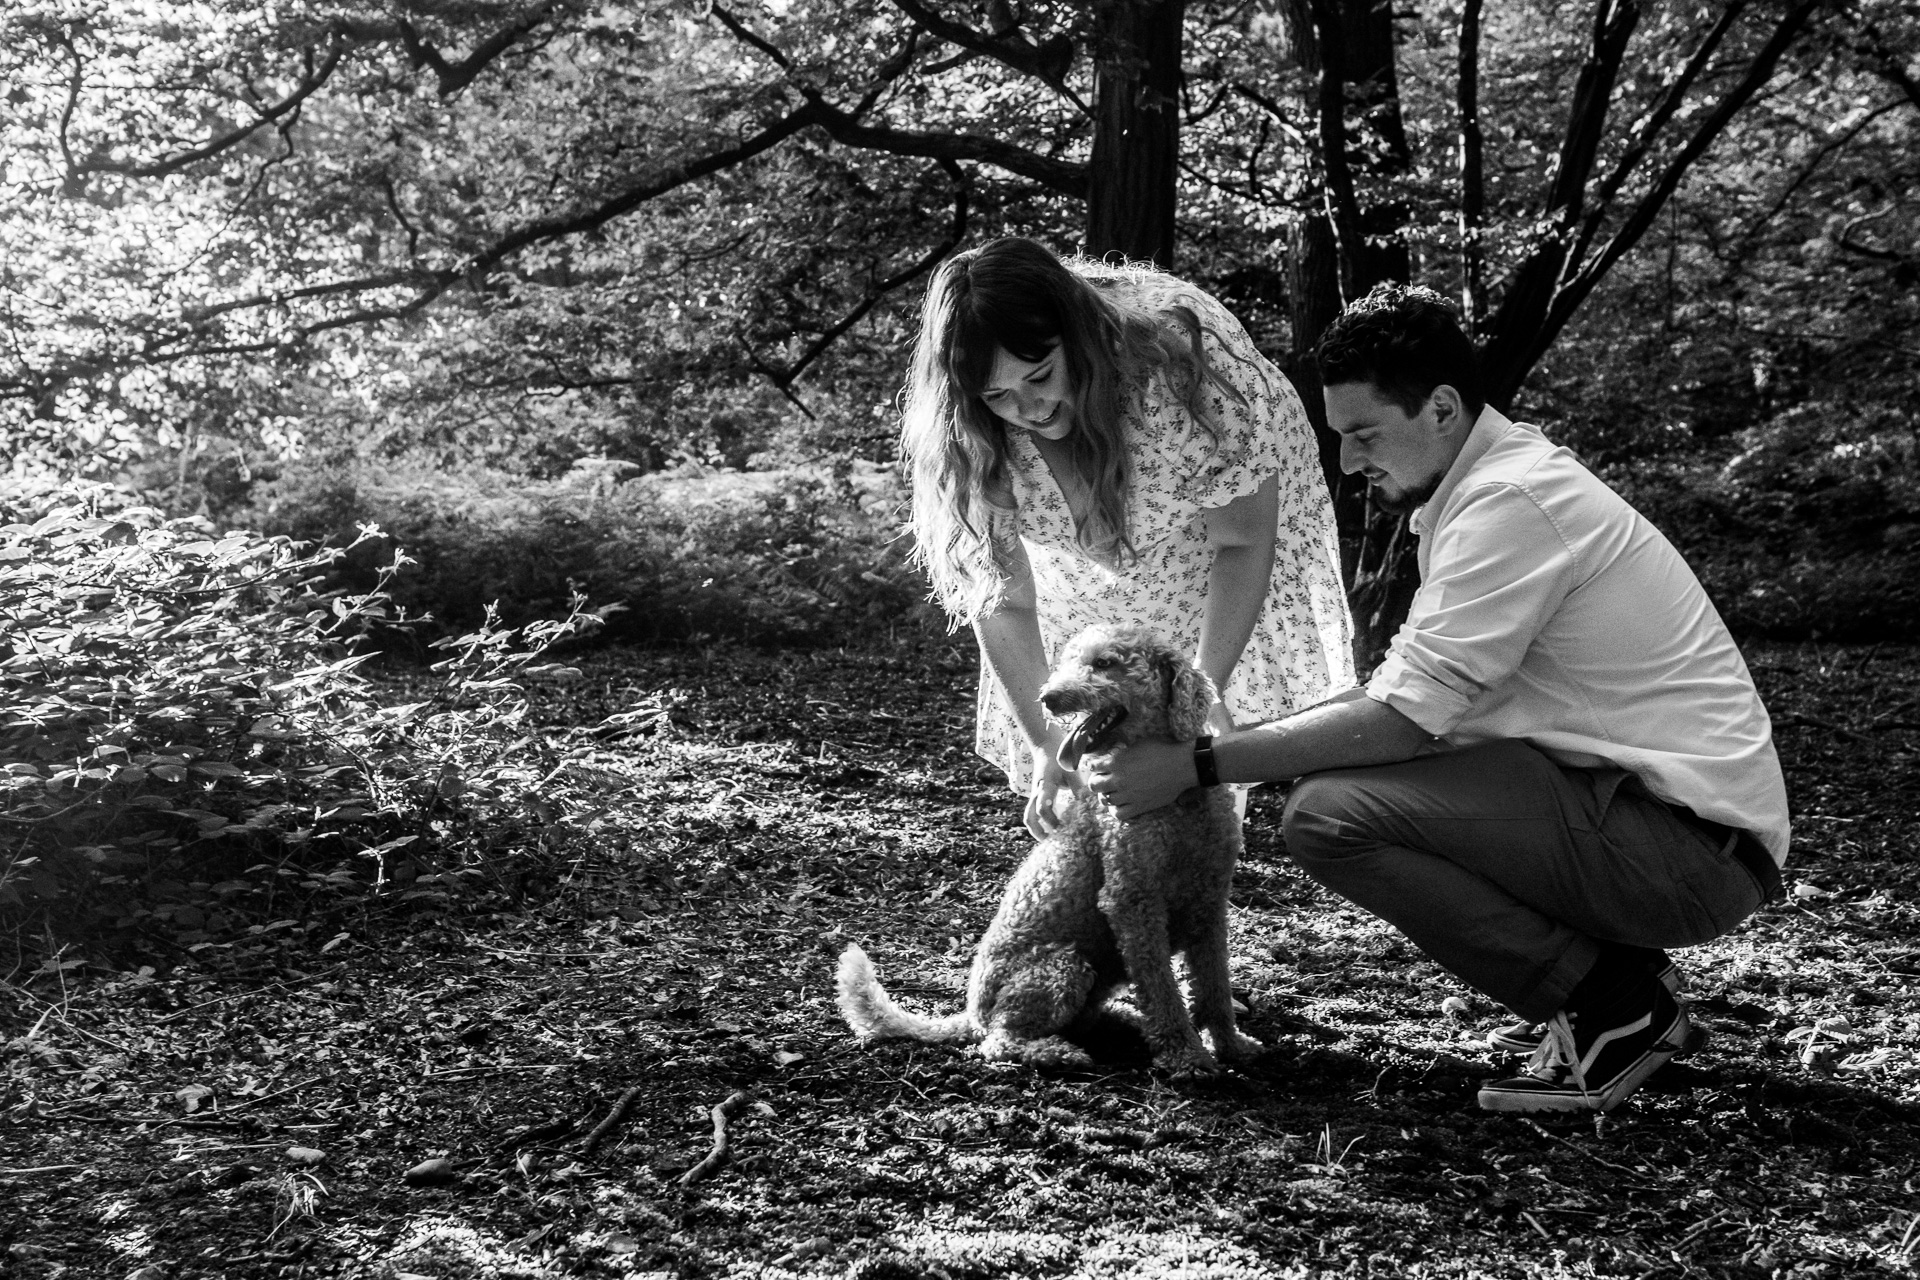 Wain woods in Hitchin, pre wedding photoshoot - A couple play with their dog